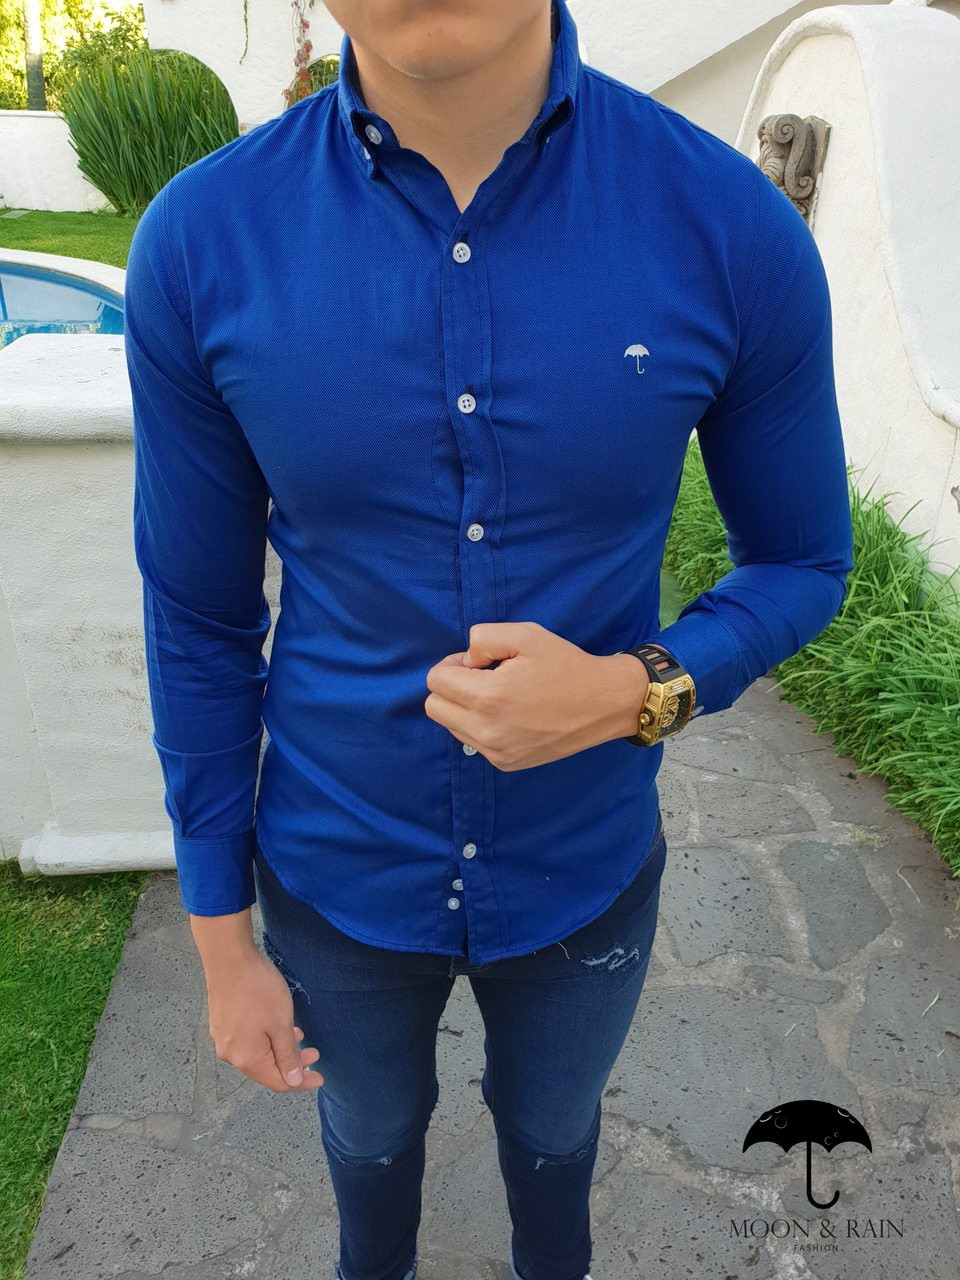 new lower prices brand quality release info on Men's Royal Blue Slim Fit Dress Shirt by Moon & Rain